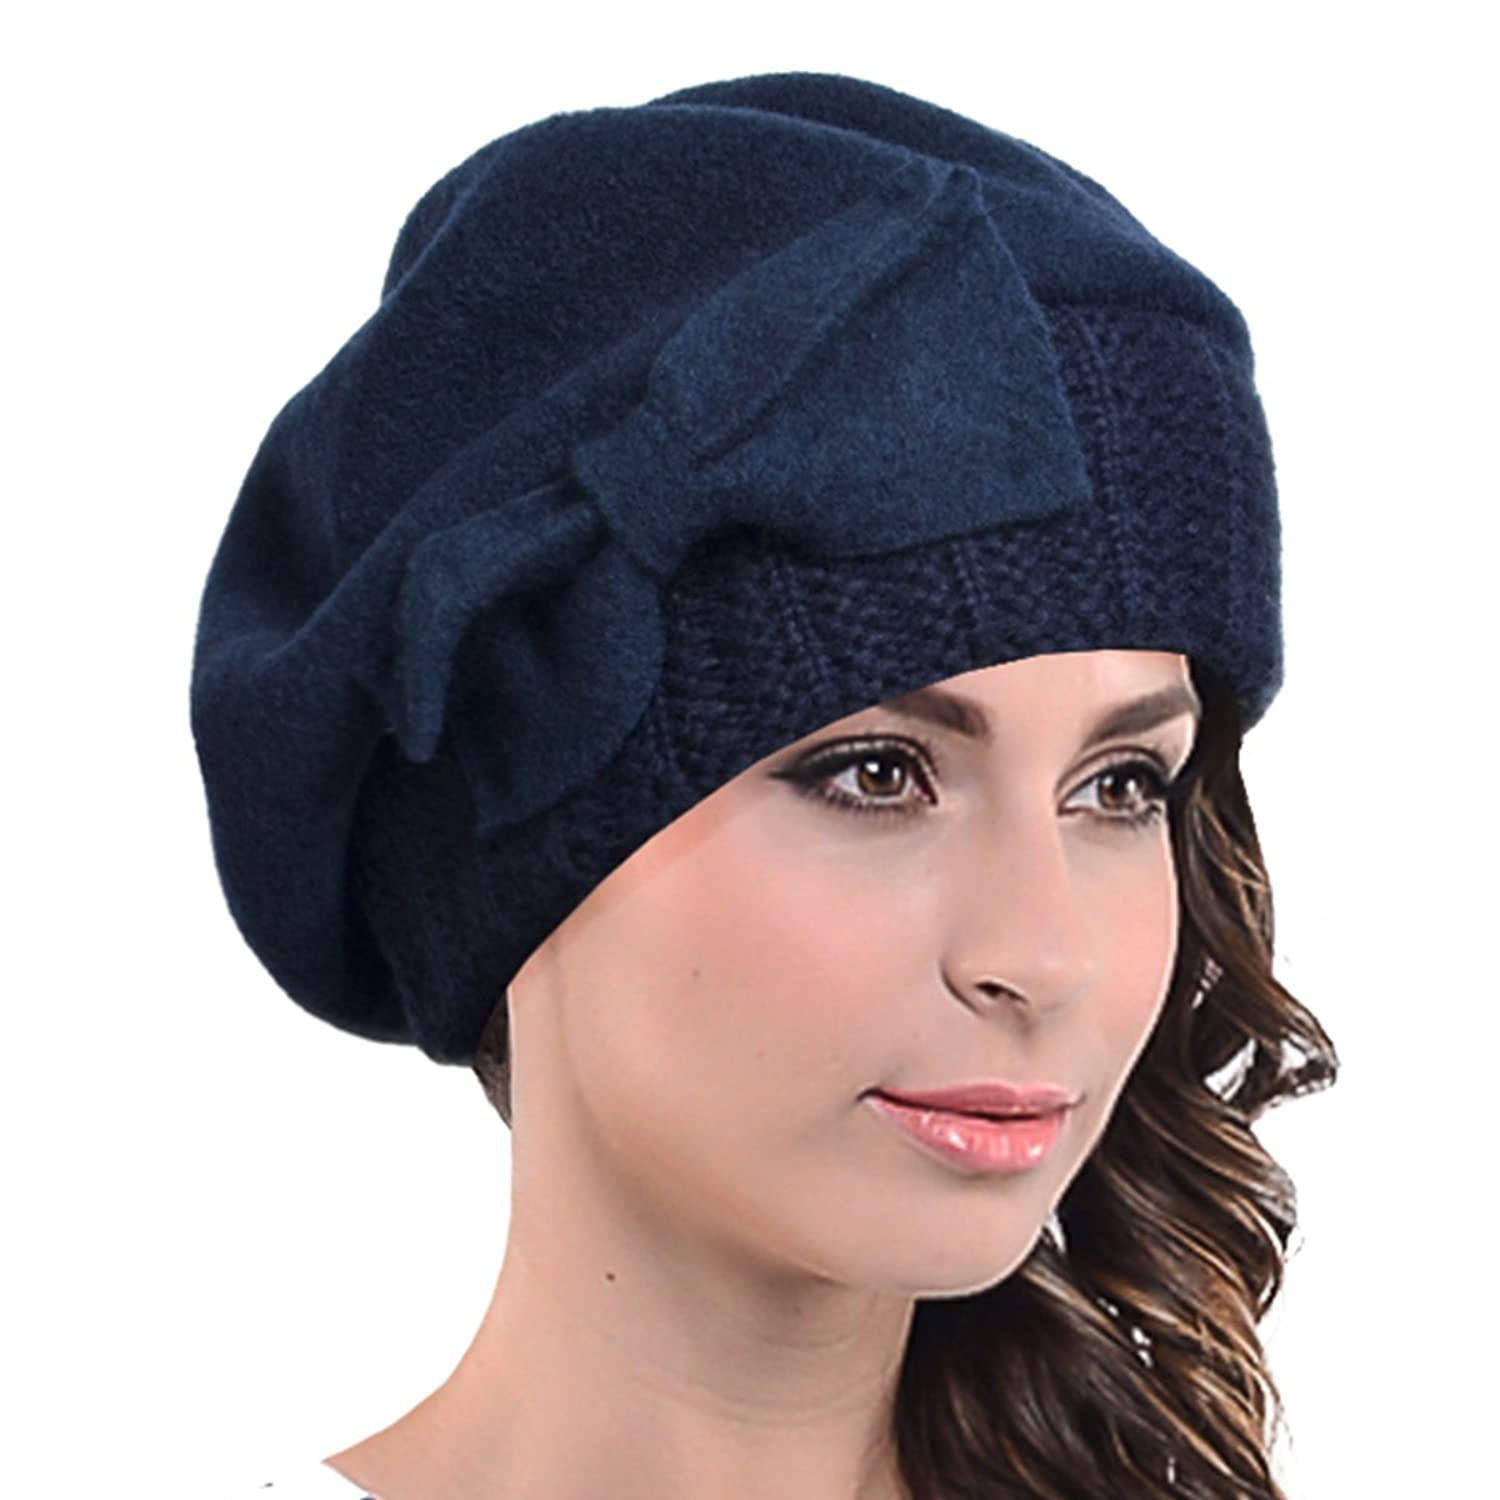 1950s Style Hats for Sale Lady French Beret Wool Beret Chic Beanie Winter Hat Jf-br034 $21.99 AT vintagedancer.com